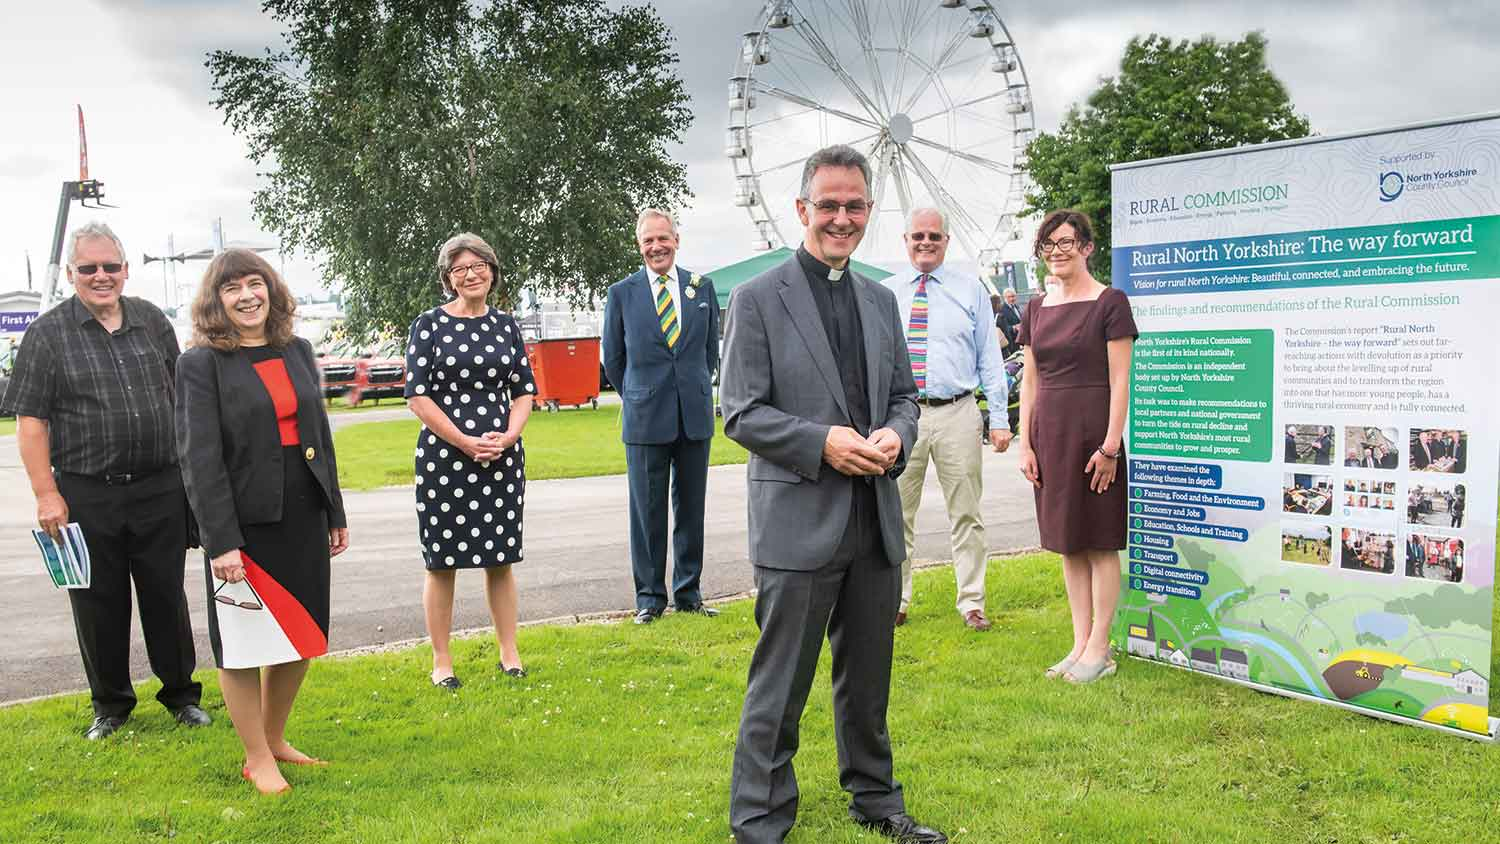 Rural commissioners at the Great Yorkshire Show after the launch of their report